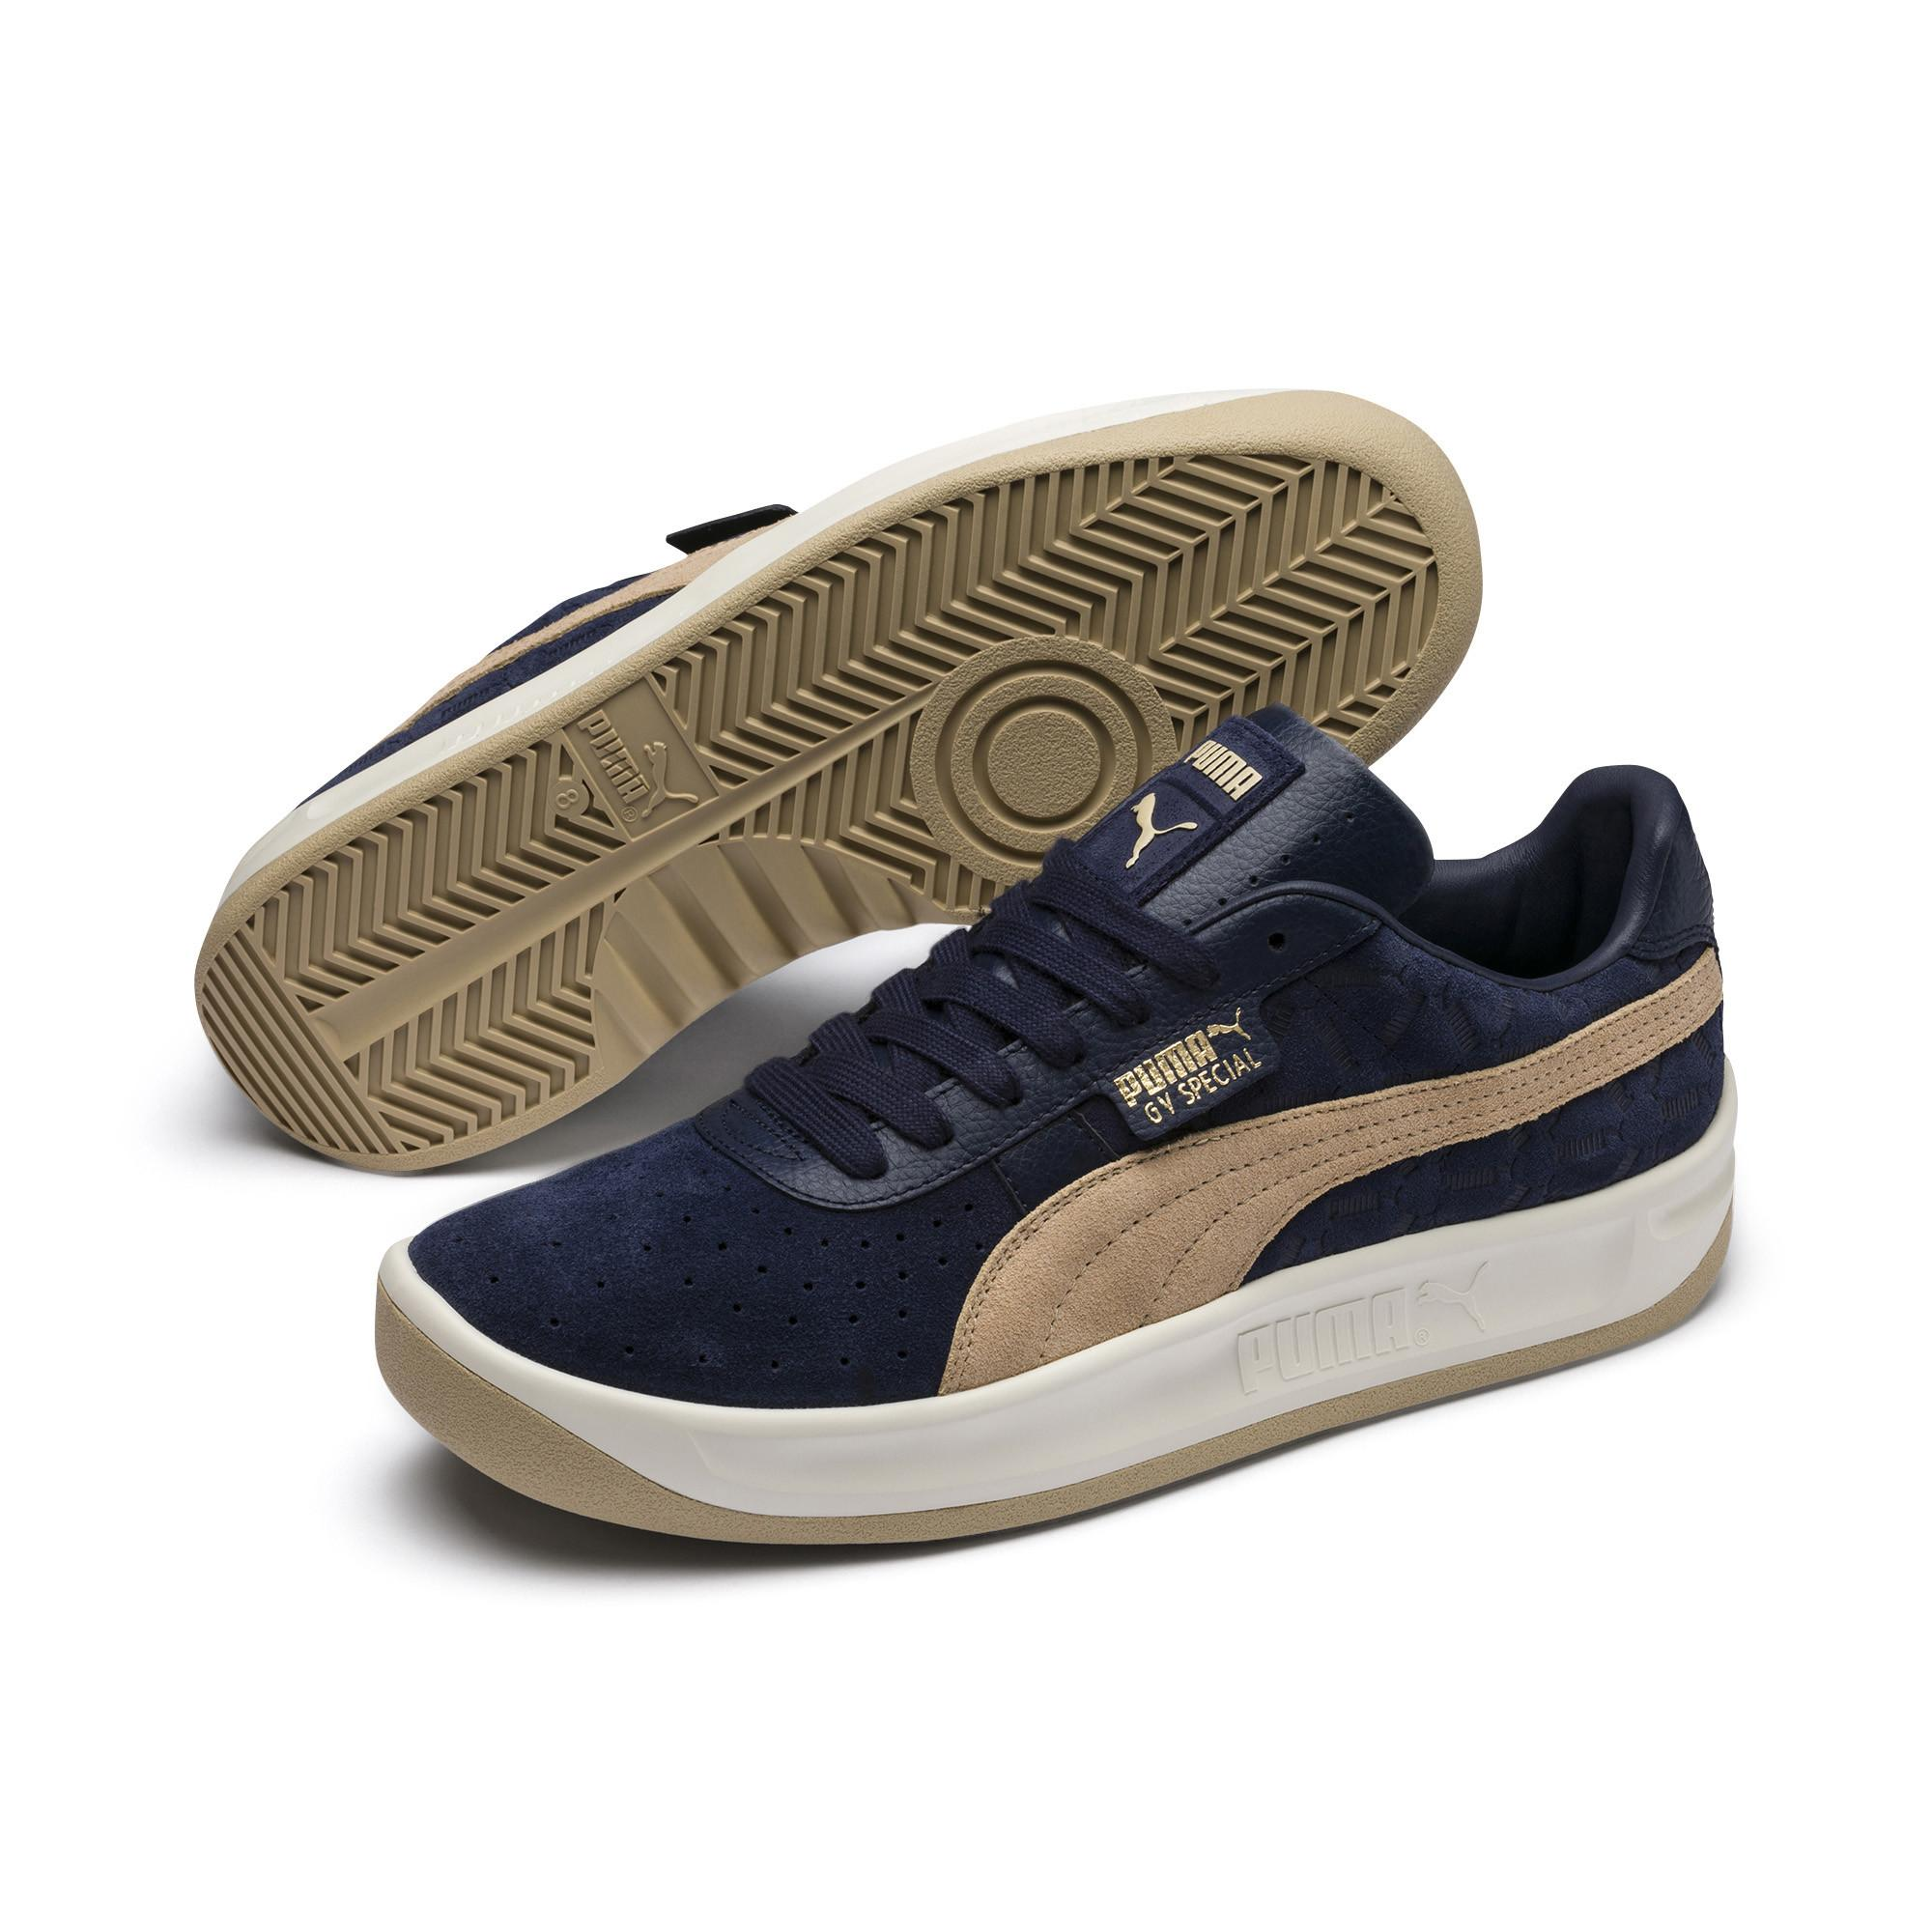 PUMA - Blue Gv Special Lux Sneakers for Men - Lyst. View fullscreen d26eed5db